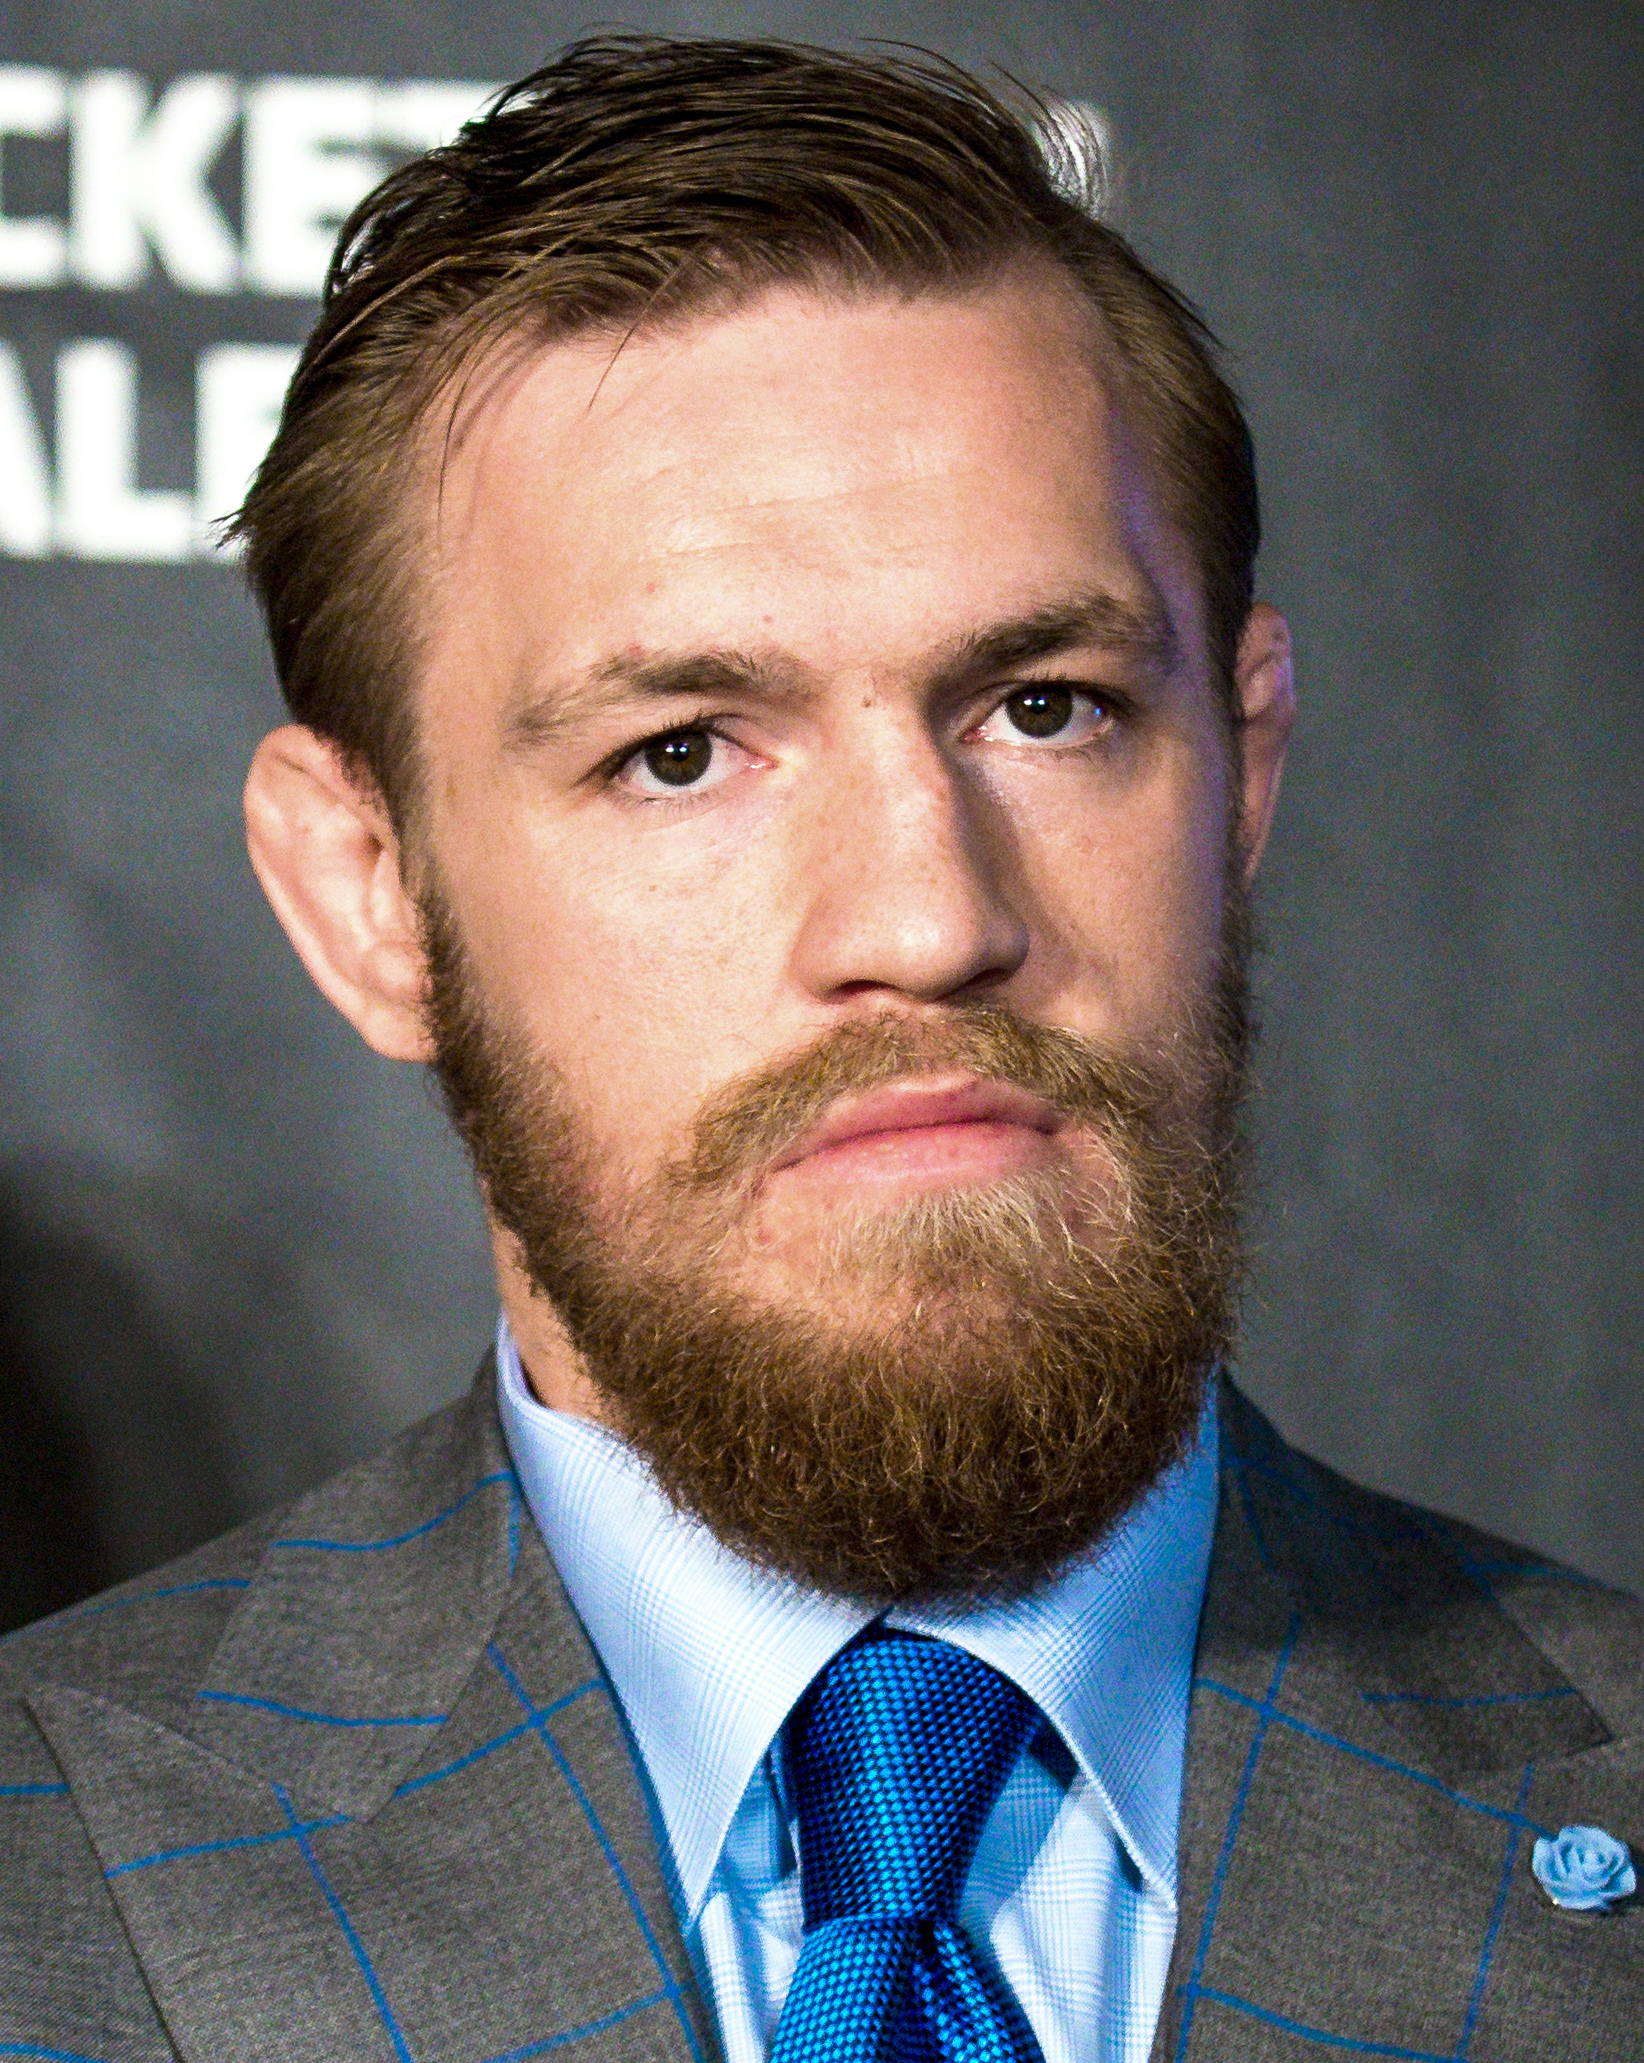 File:Conor McGregor 2015.jpg - Wikimedia Commons